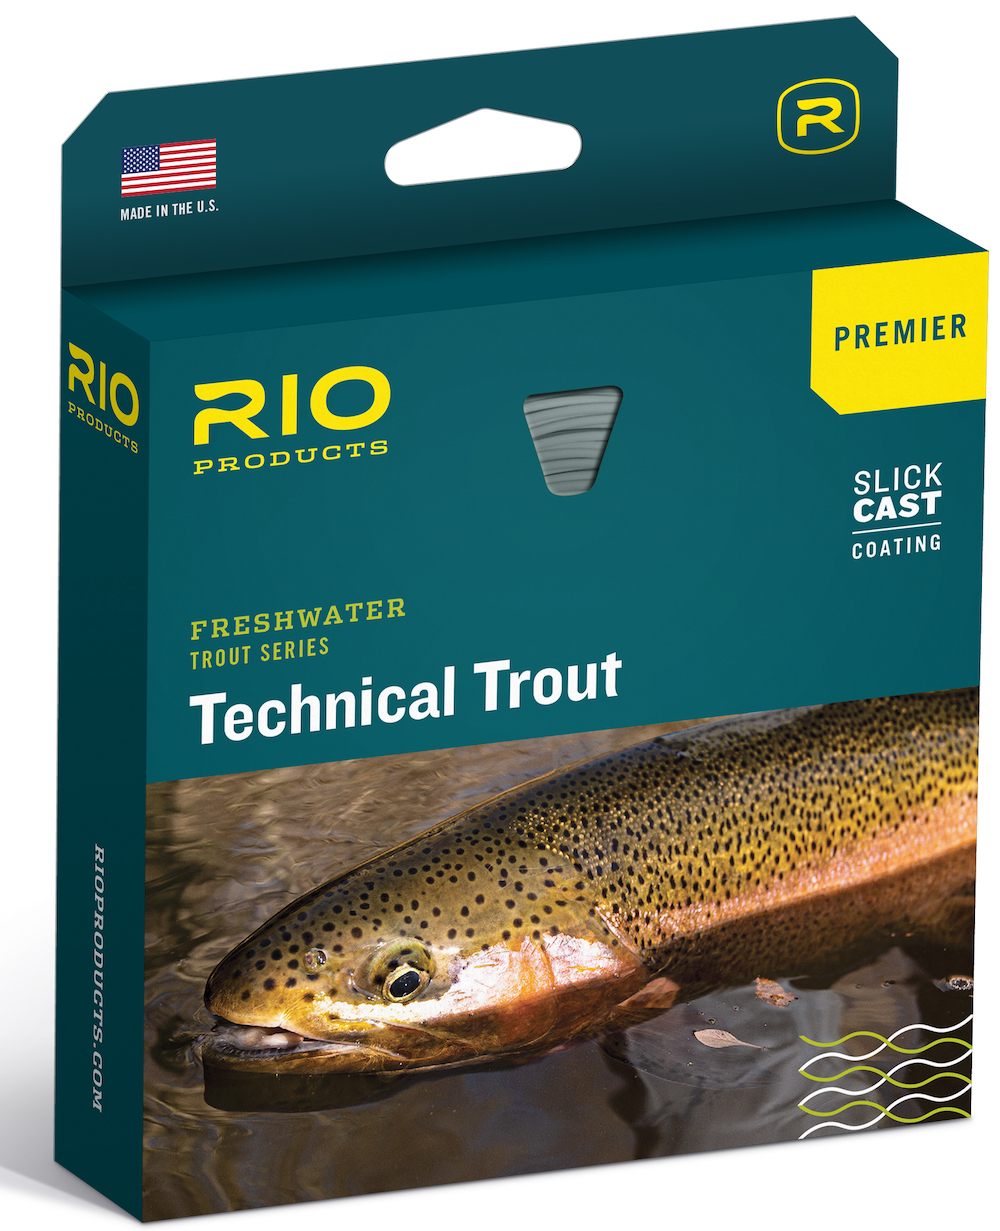 NEW! RIO Premier Technical Trout Fly Line